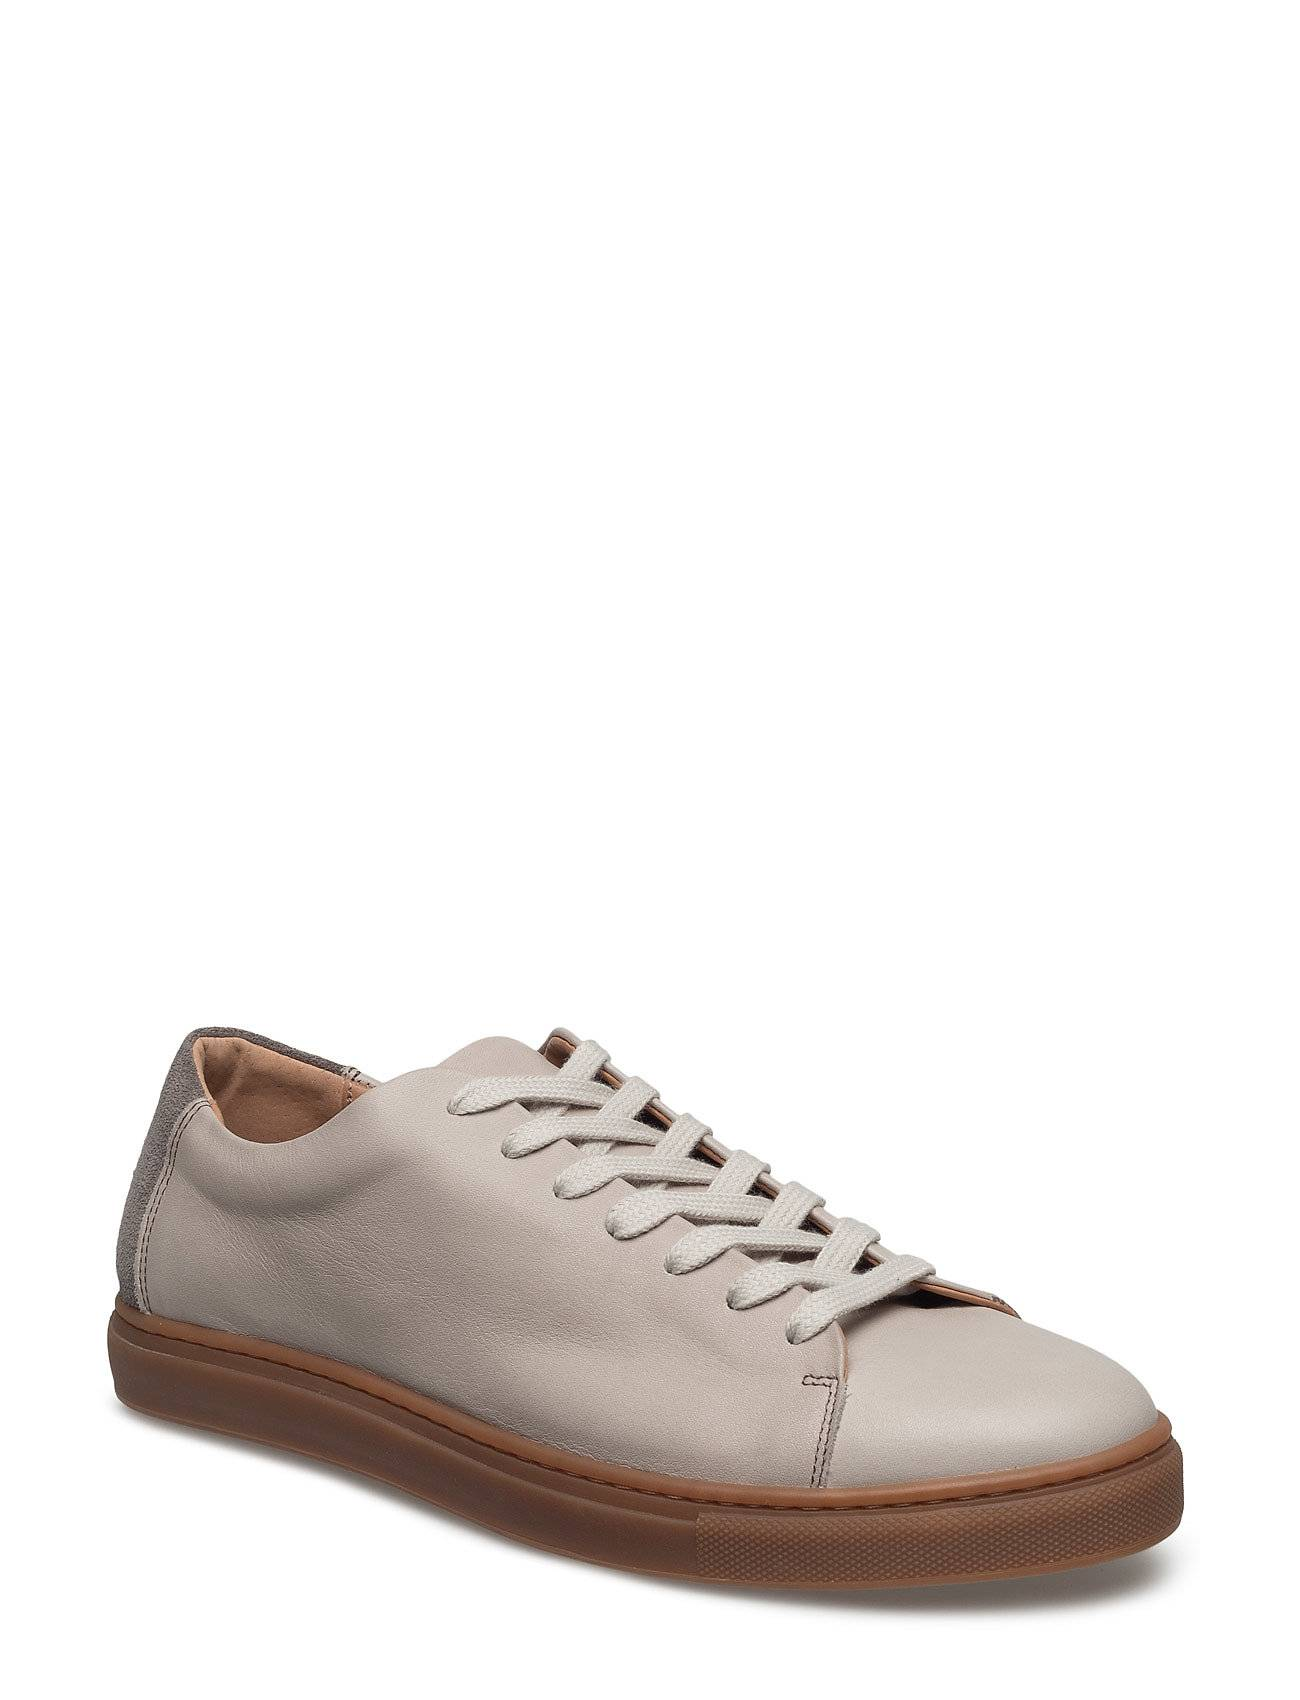 Selected Homme Shndavid New Leather Sneaker